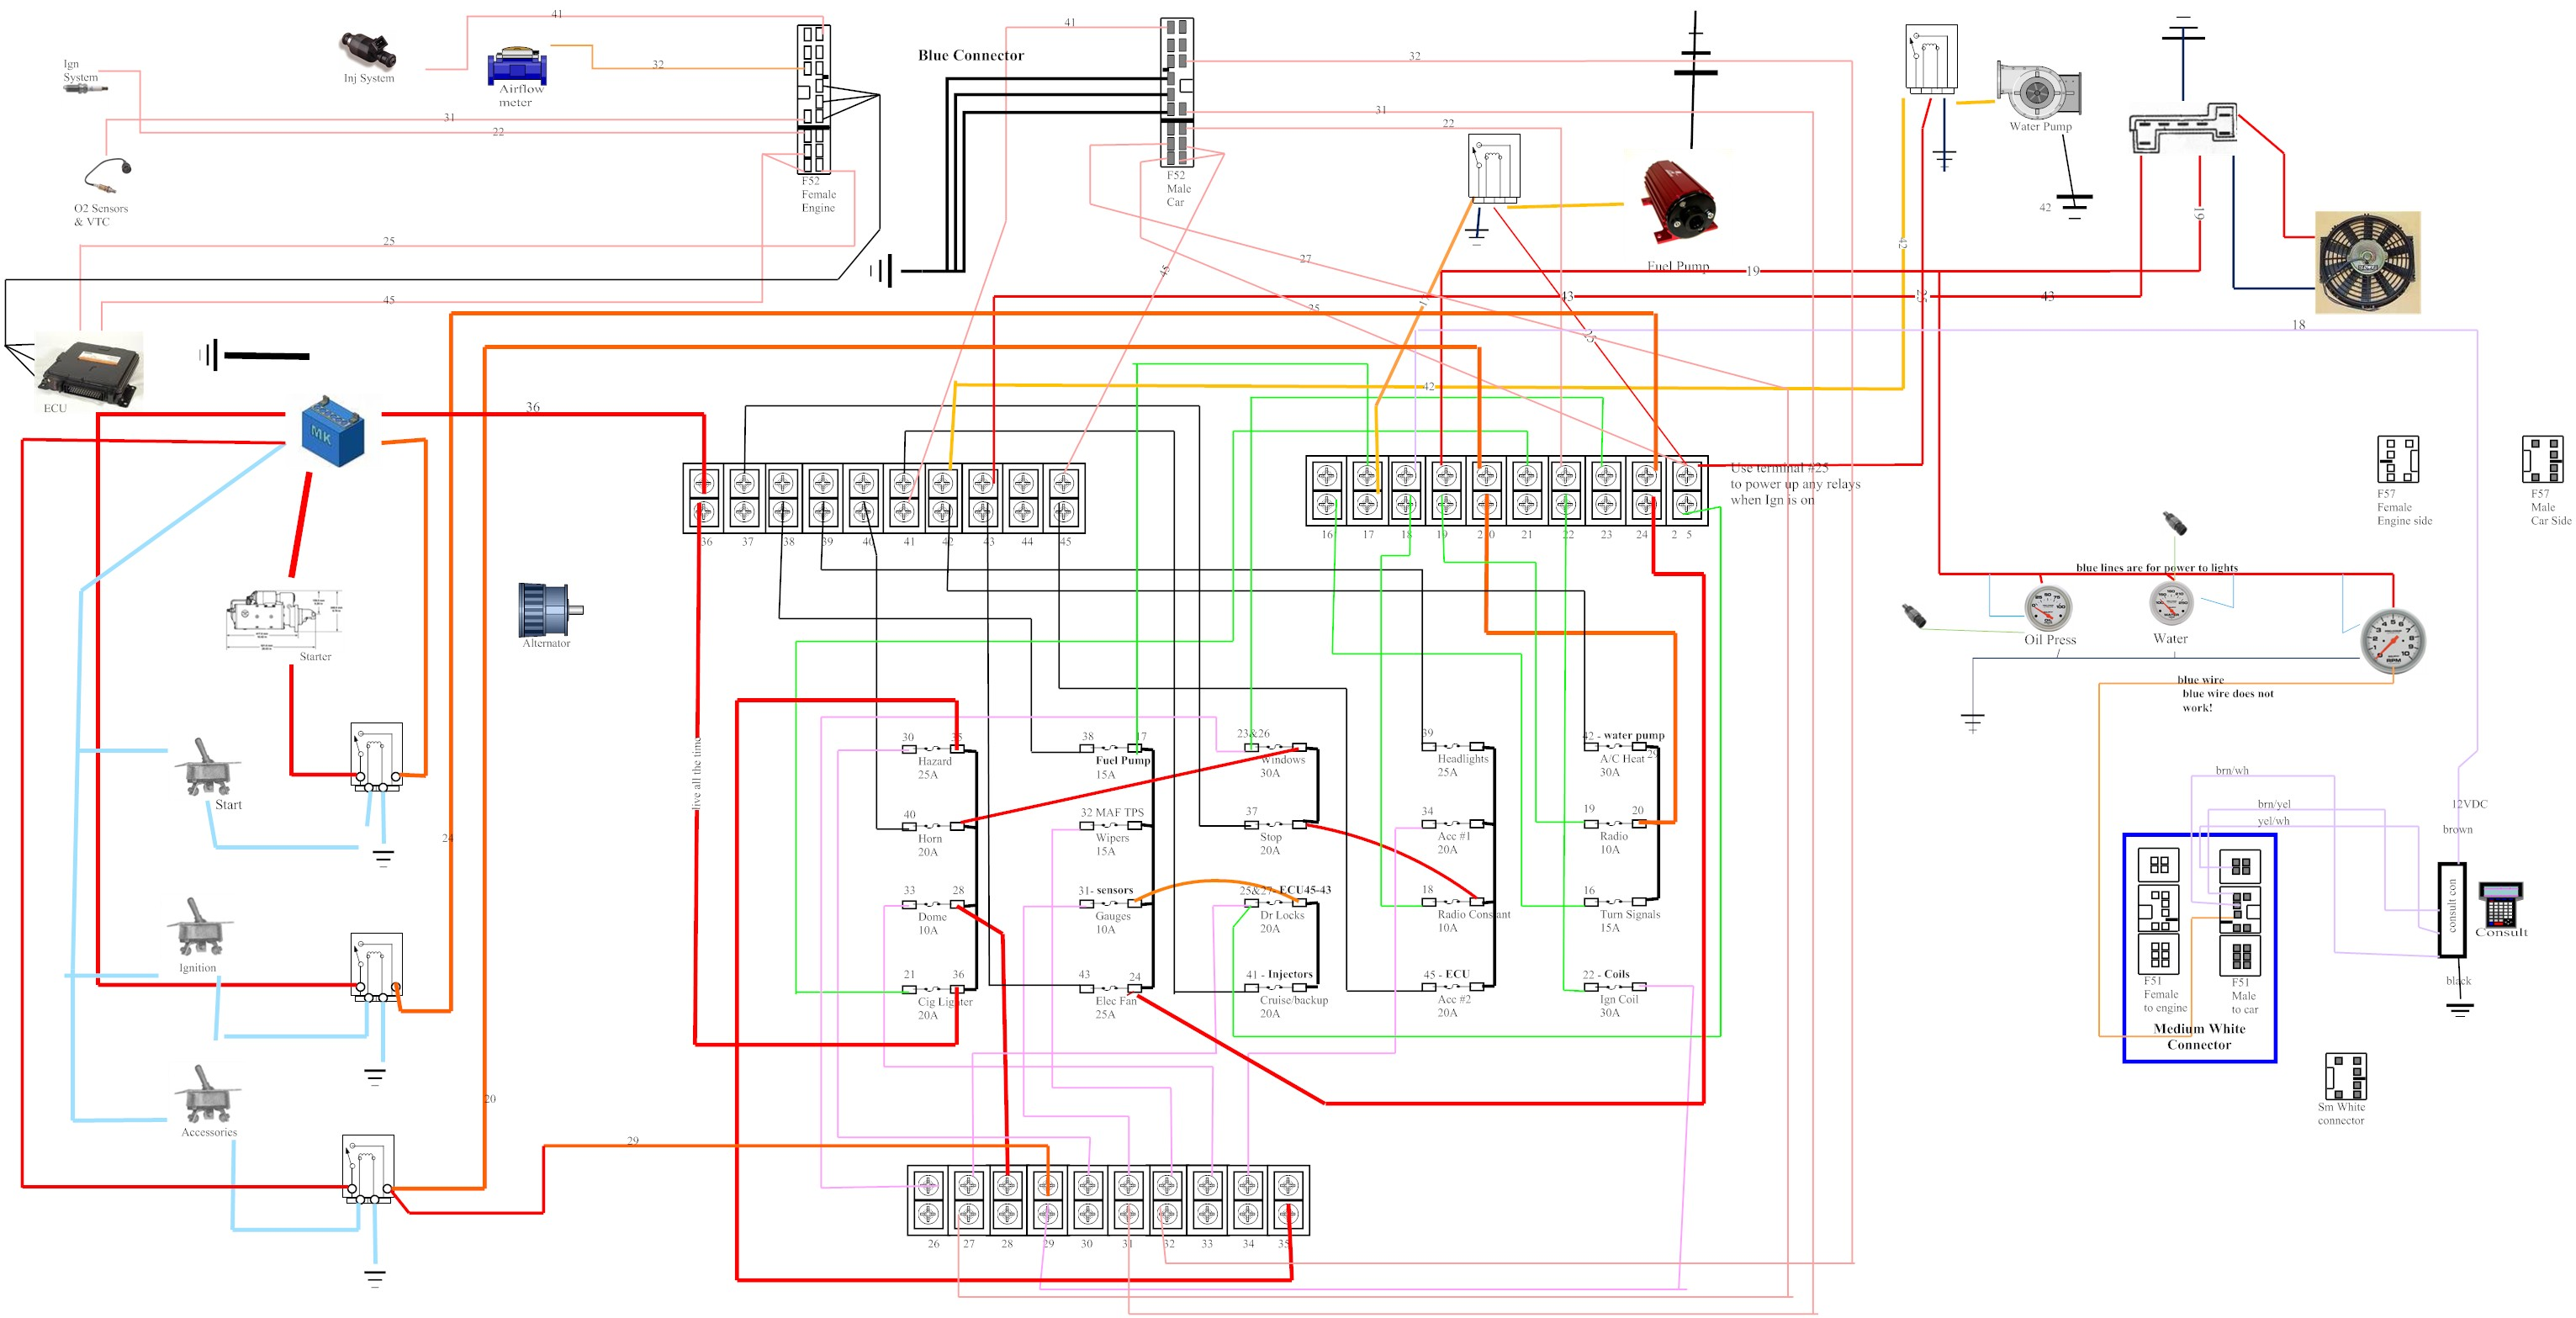 VH45 Wiring Diagram vh45de 240sx wiring harness vh45 s13 wiring \u2022 buccaneersvsrams co 3-Way Switch Wiring Diagram for Switch To at panicattacktreatment.co